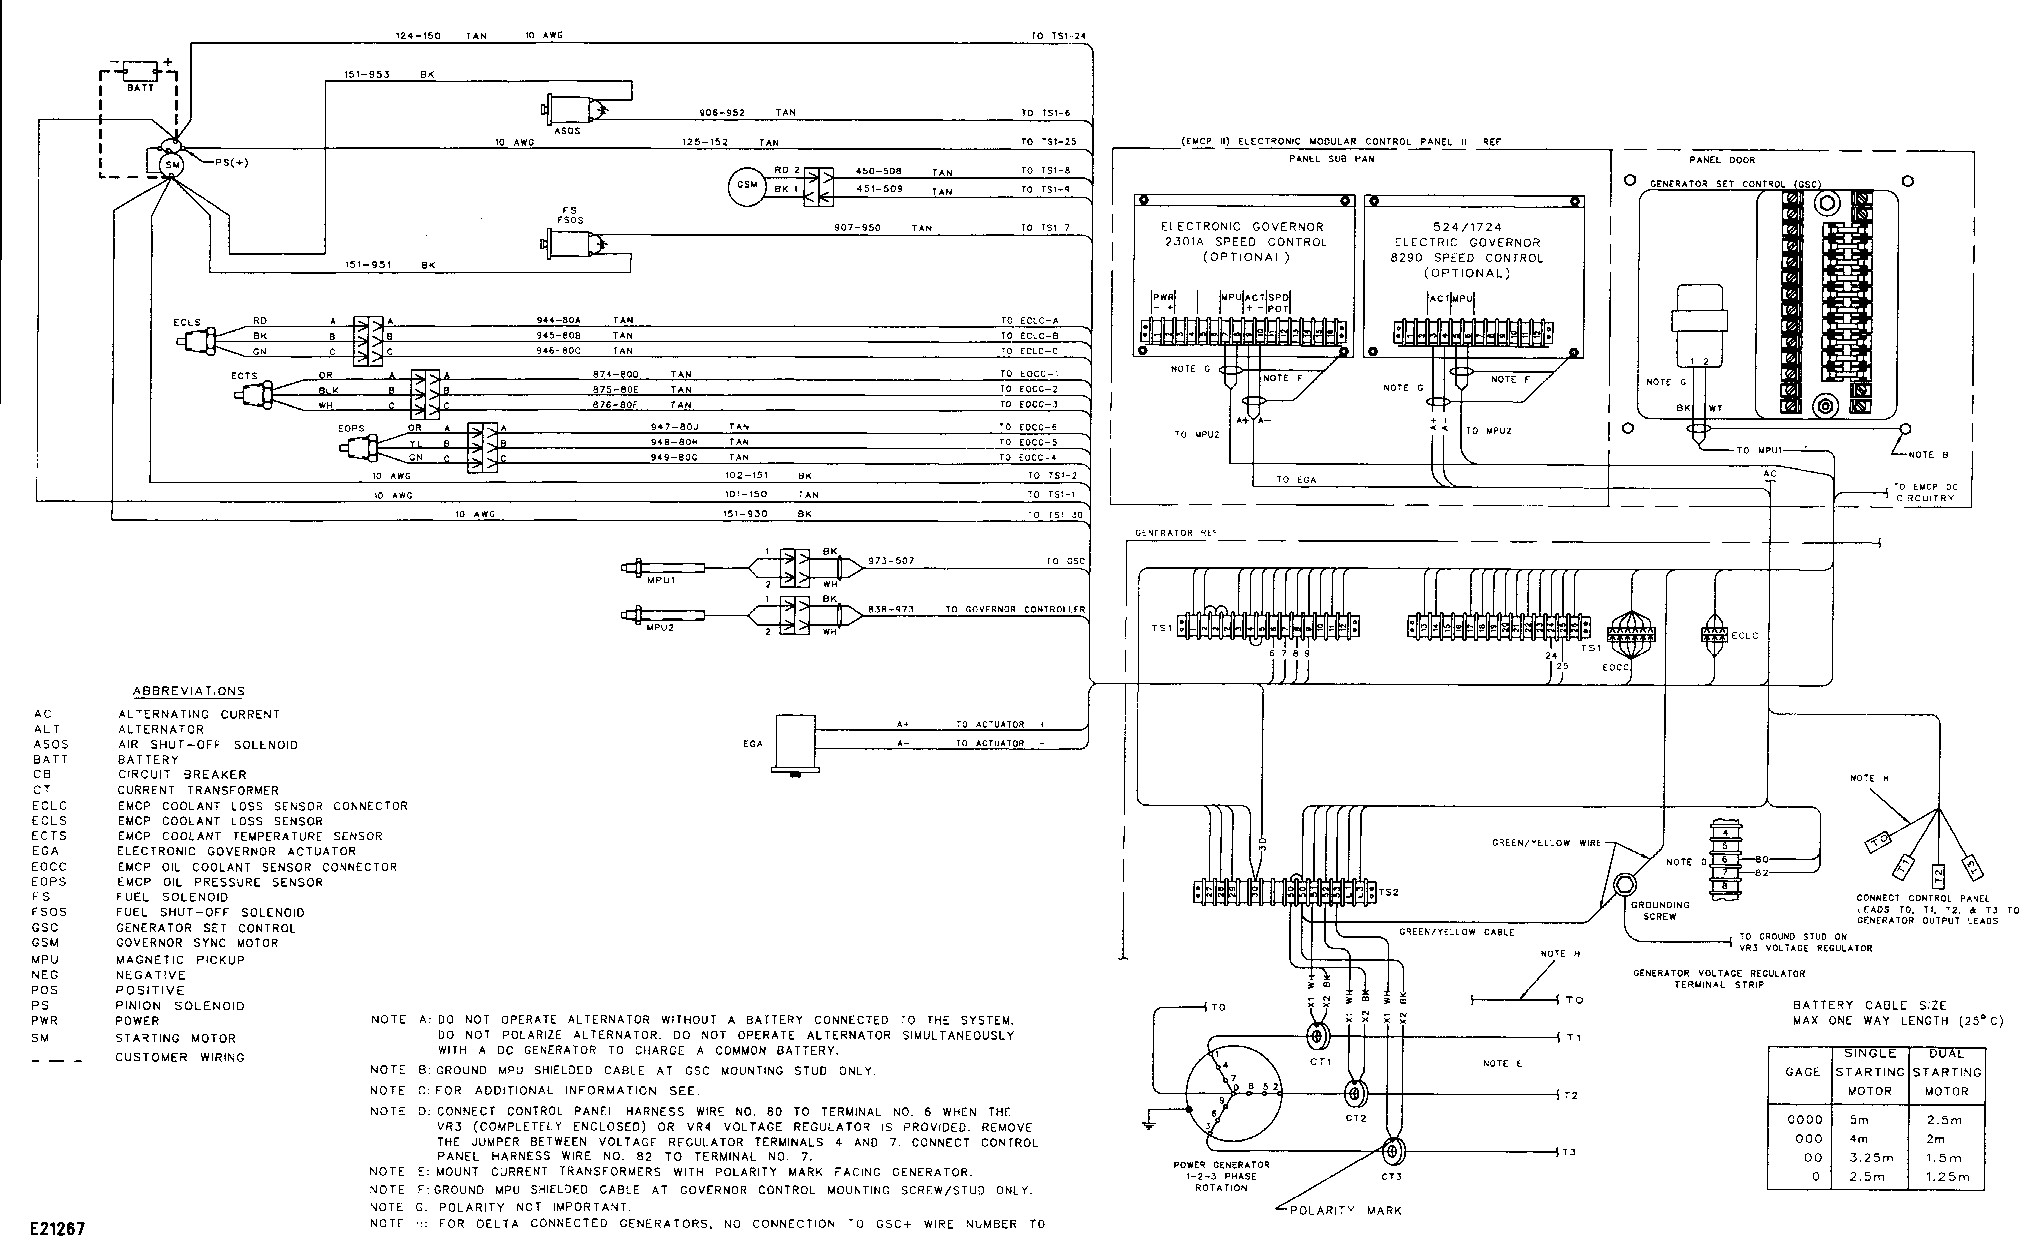 3406b cat engine diagram | wiring library c15 cat engine wiring diagram c12 cat engine ecm diagram